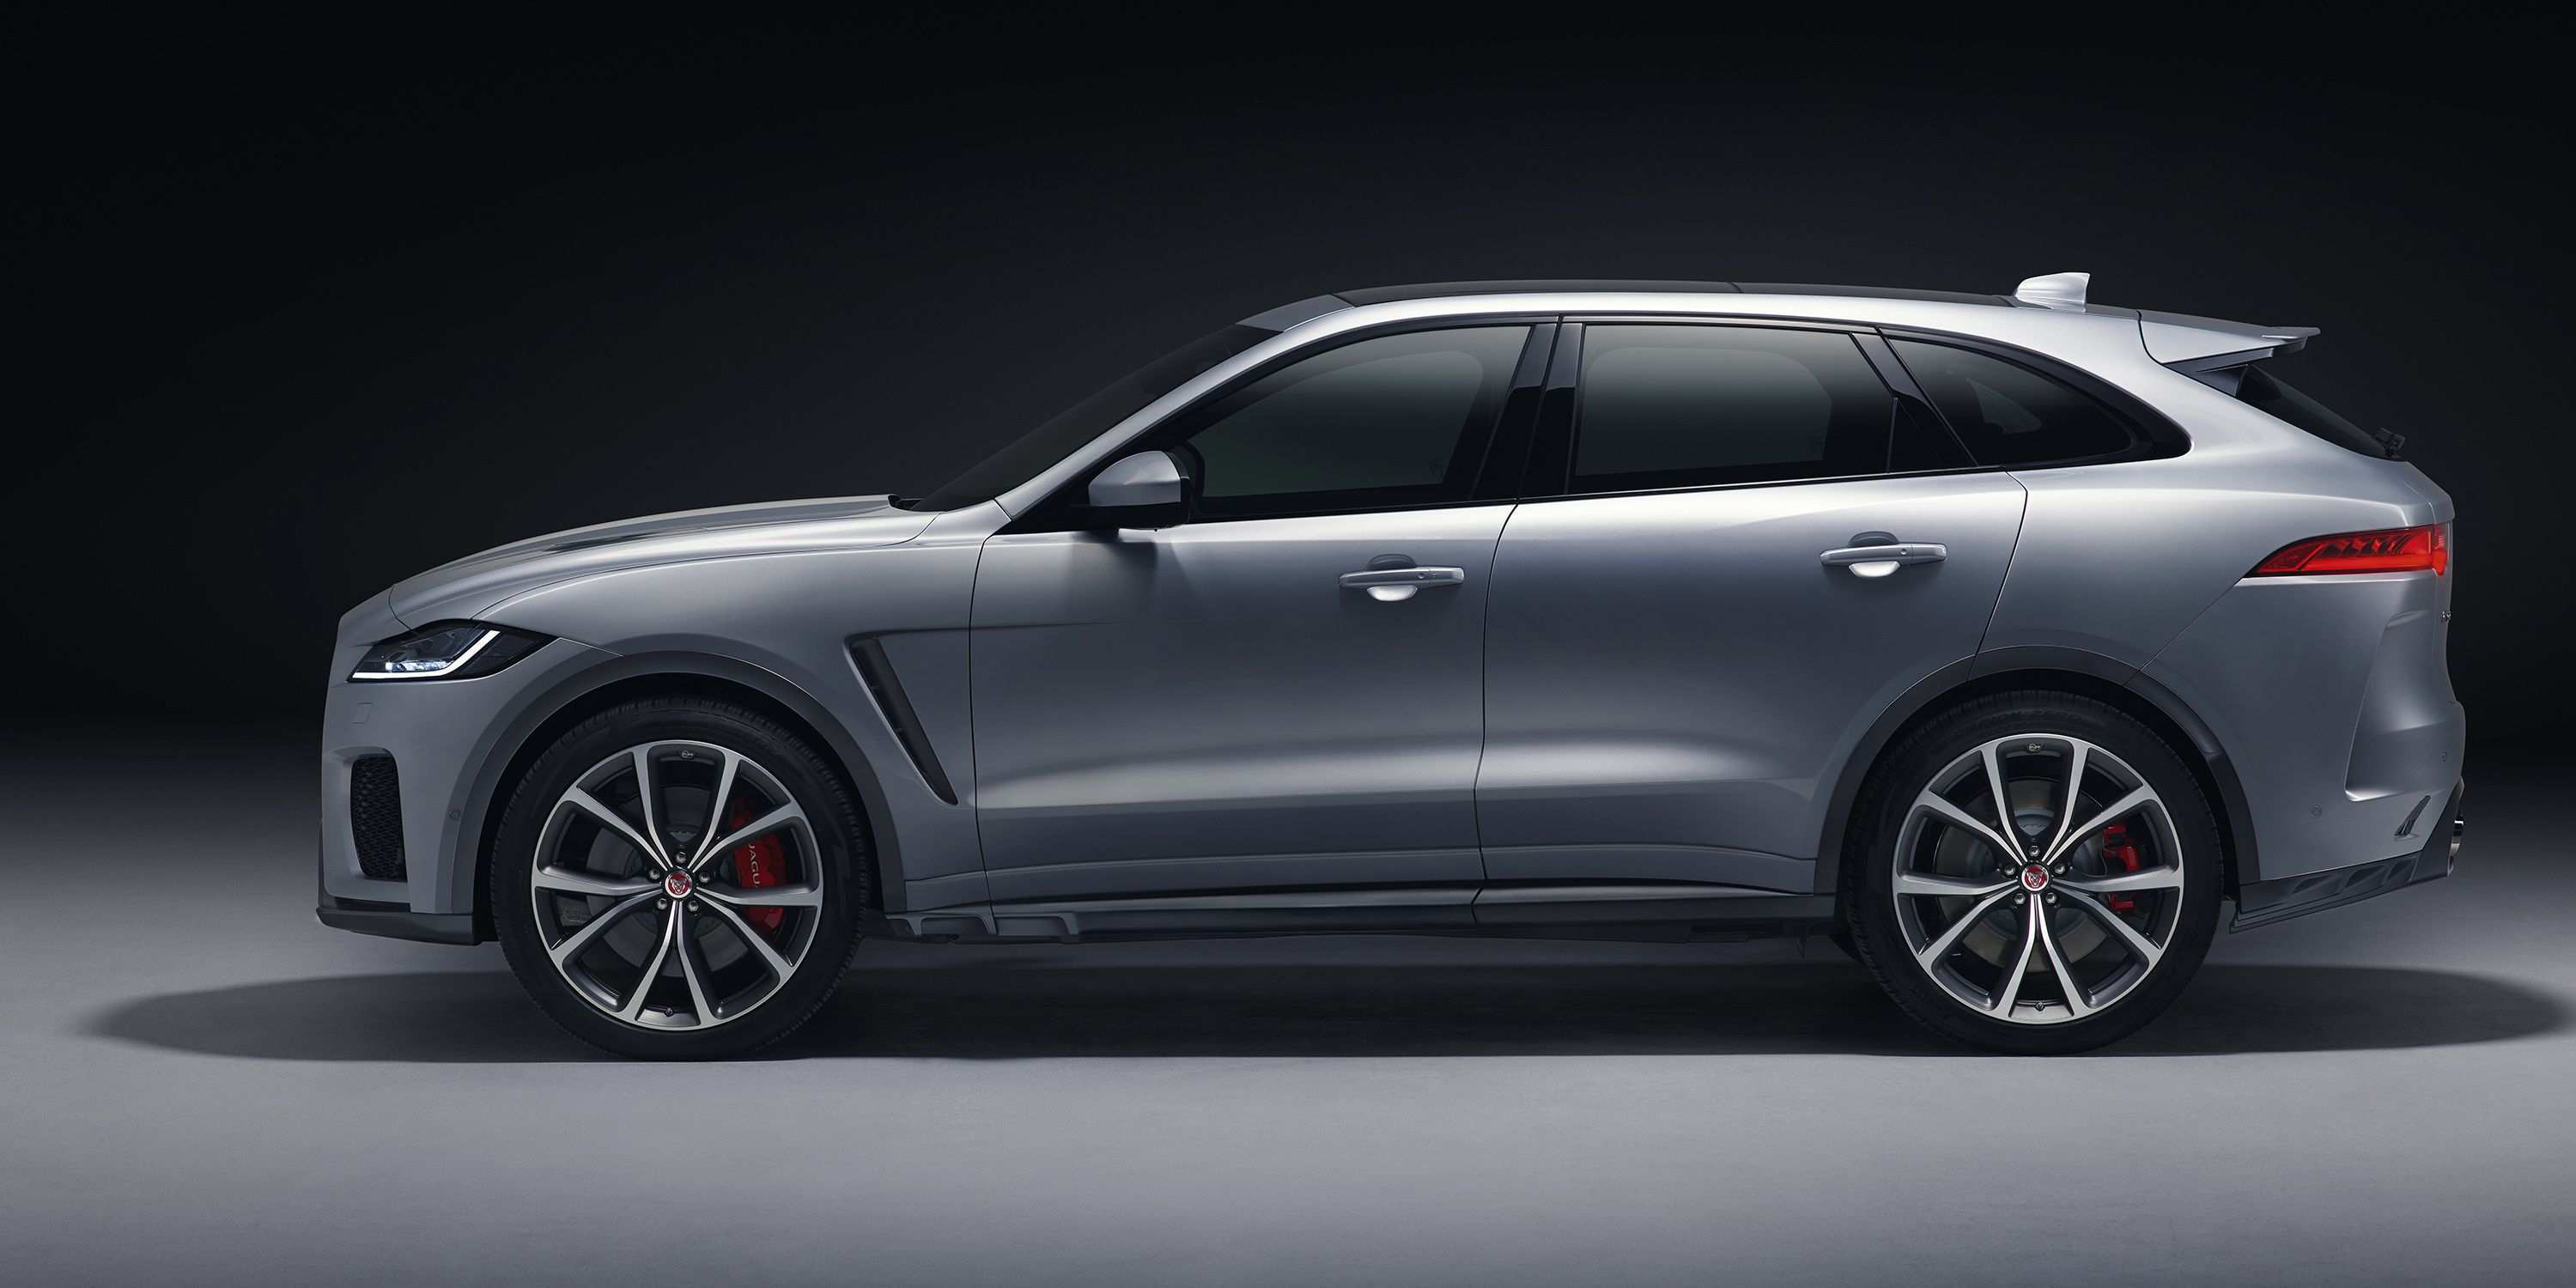 35 Best Review 2019 Jaguar F Pace Changes Release for 2019 Jaguar F Pace Changes